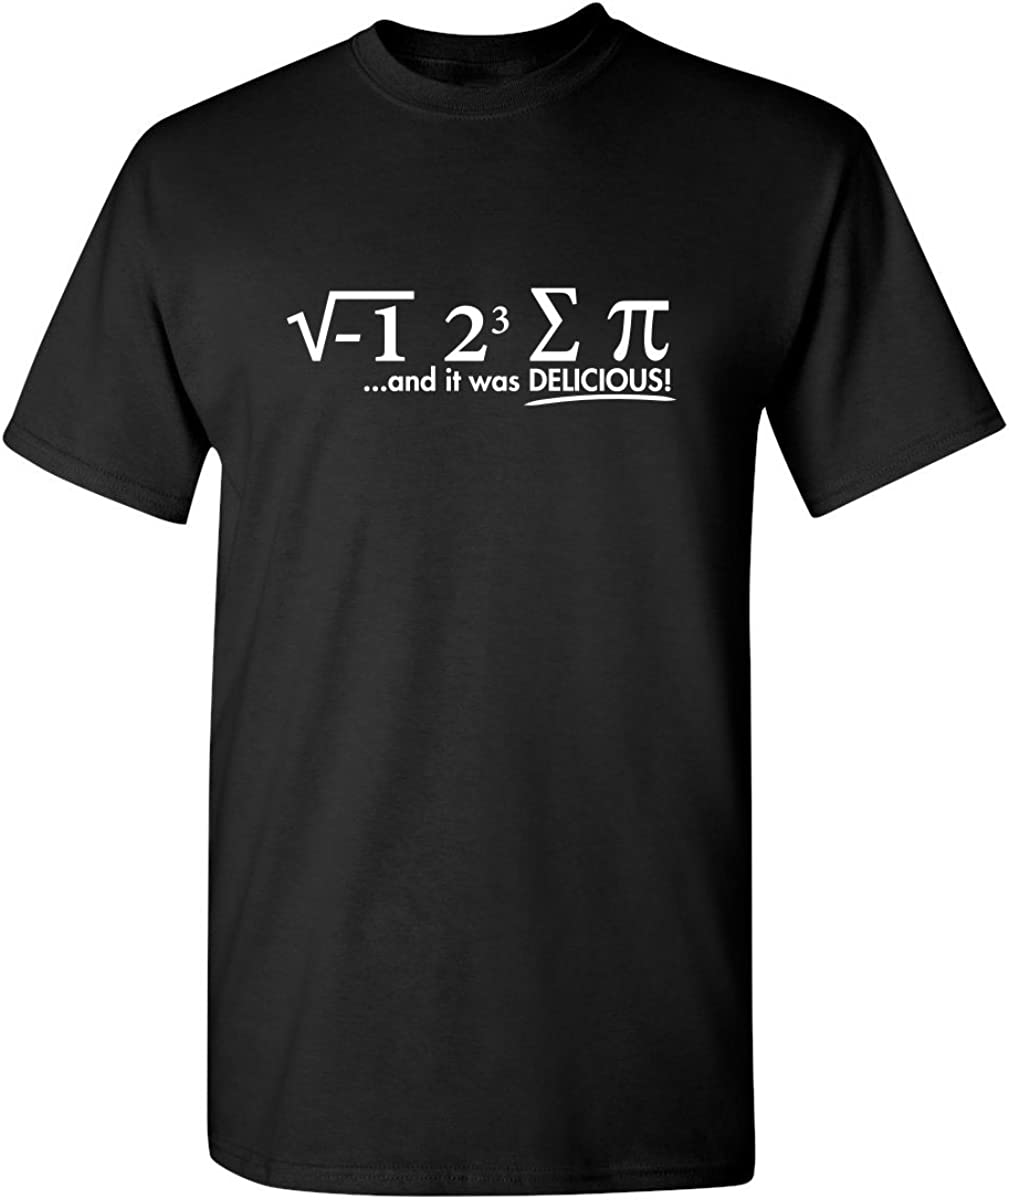 I Ate Some Pi Day It was Delicious Math Sarcastic Humor Funny Graphic T Shirt